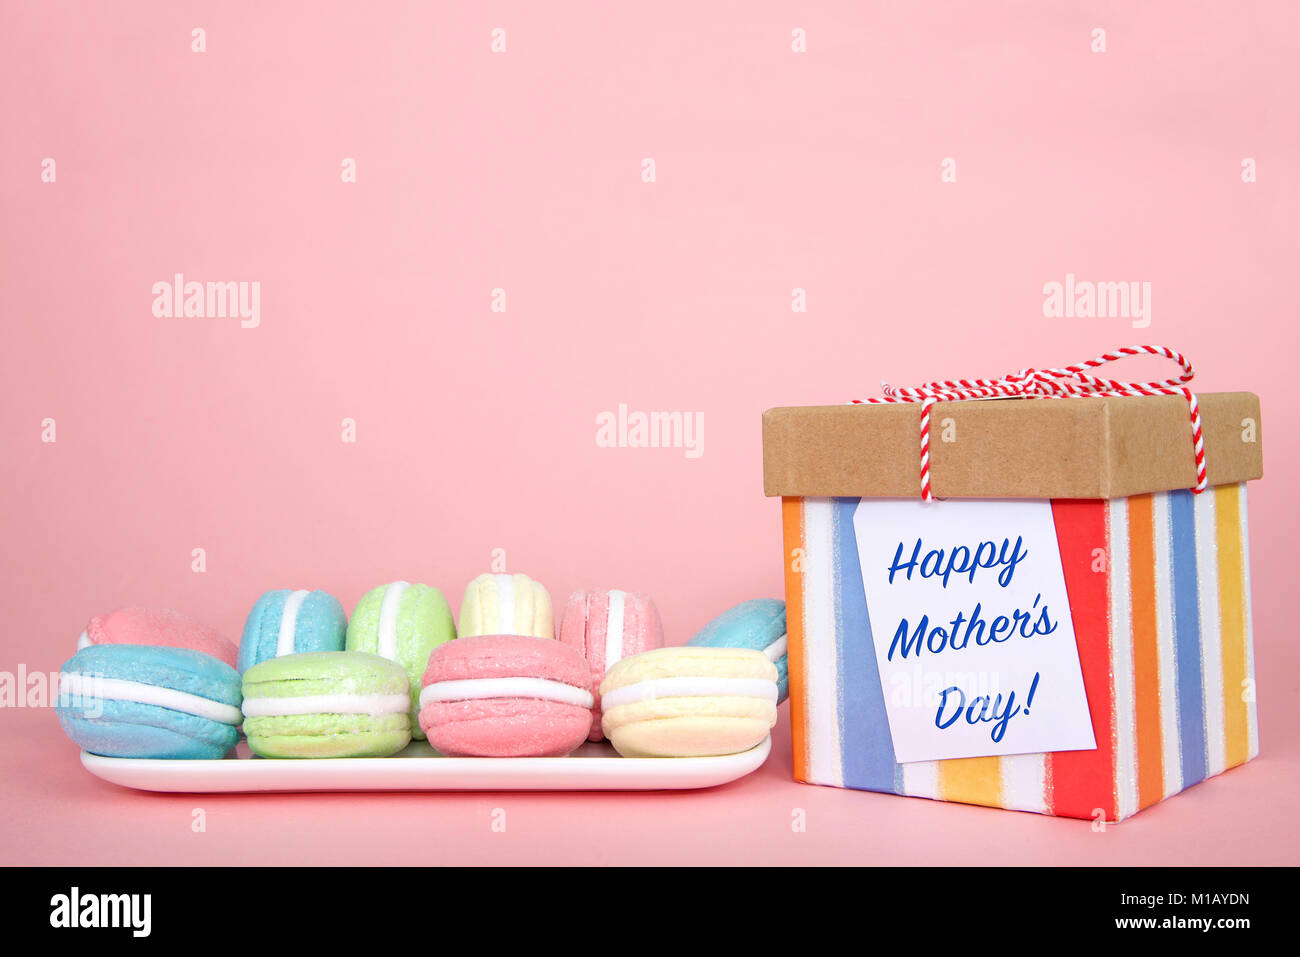 White rectangular plate with pastel colored macaron cookies laying on a pink background, colorful striped present - Stock Image